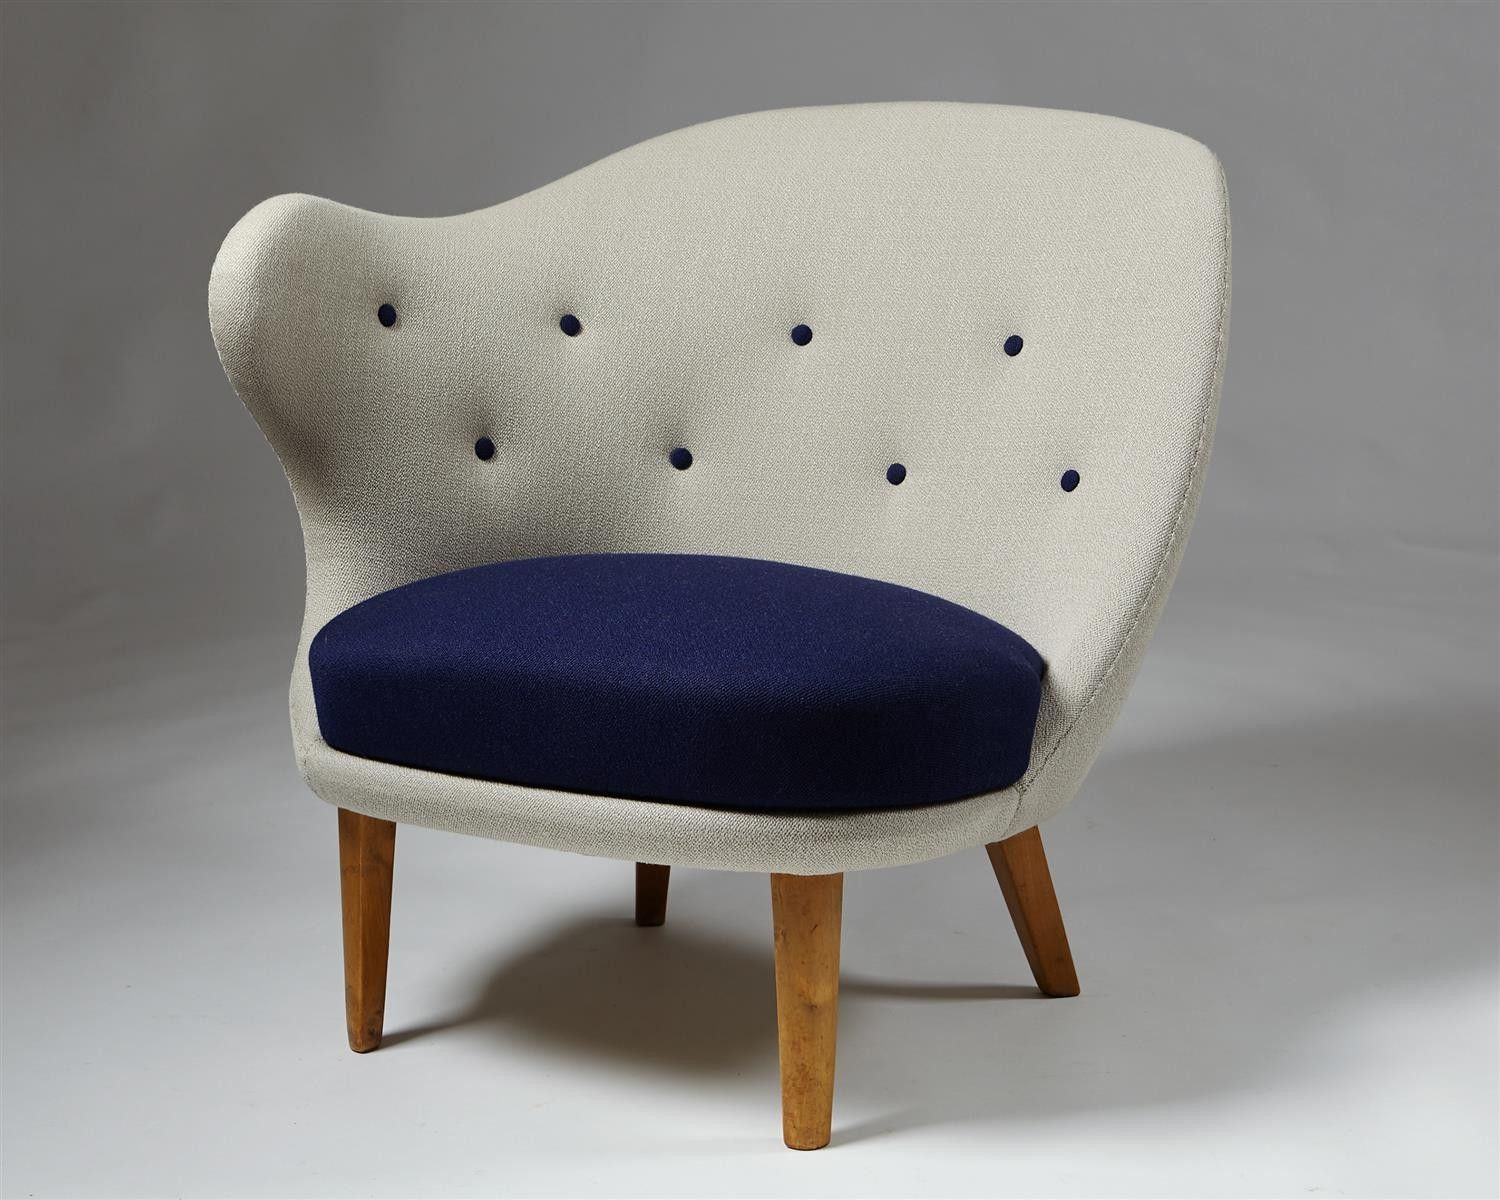 "Armchair""The Thumb"" designed by Arne Norell for Gösta Westerberg, u2014 Modernity MCM Design"